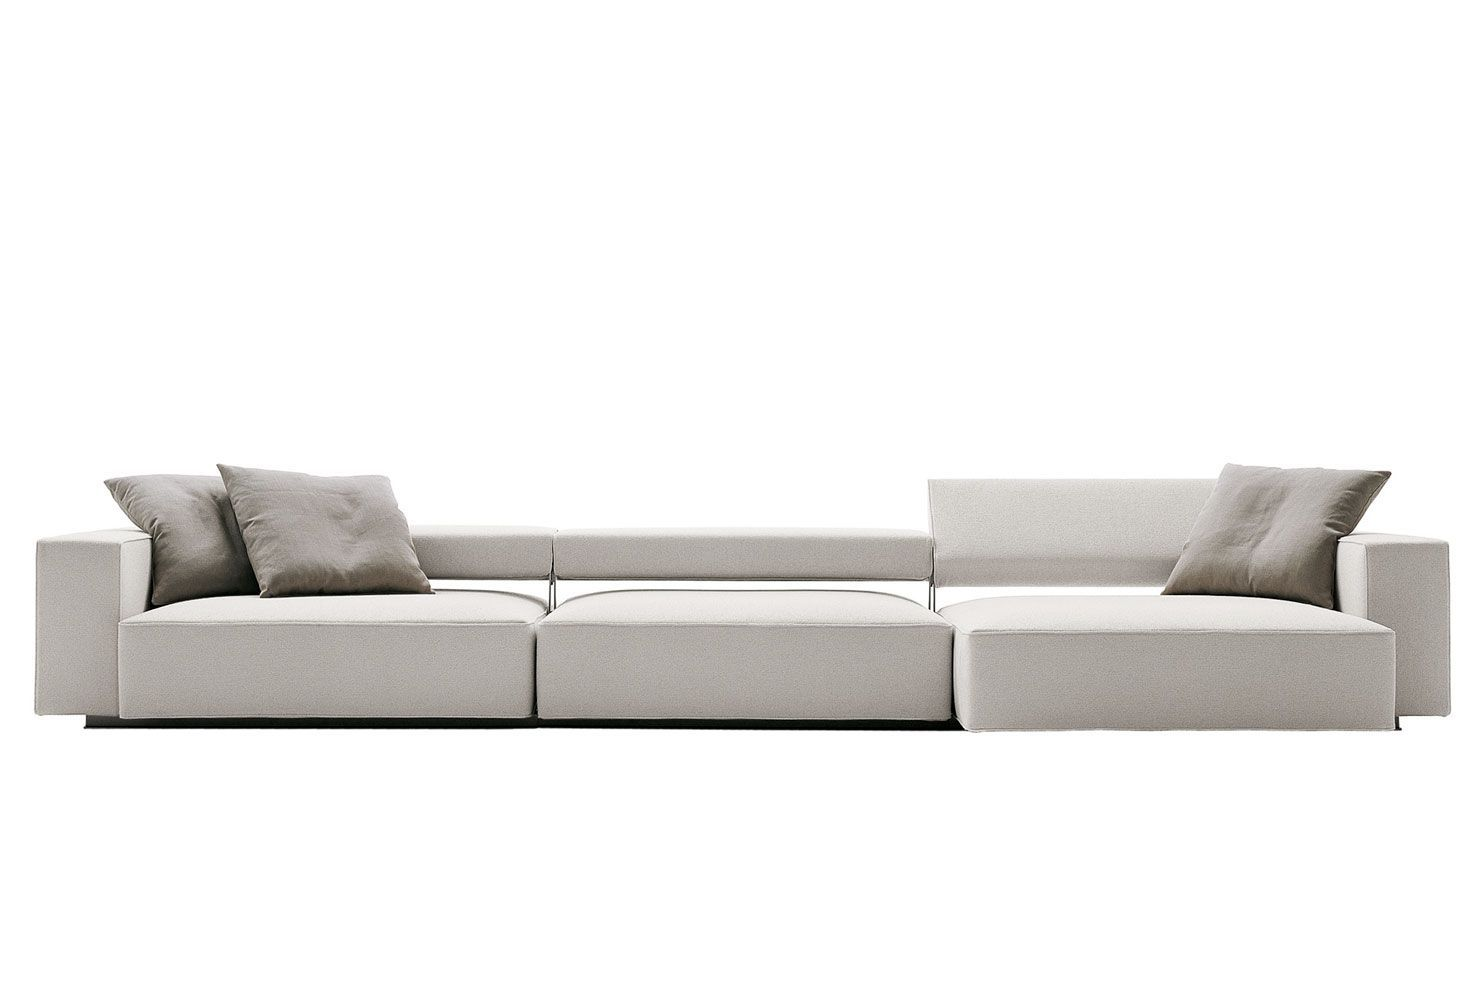 B&B Italia Sofa Andy designed by Paolo Piva, with an adjustable ...